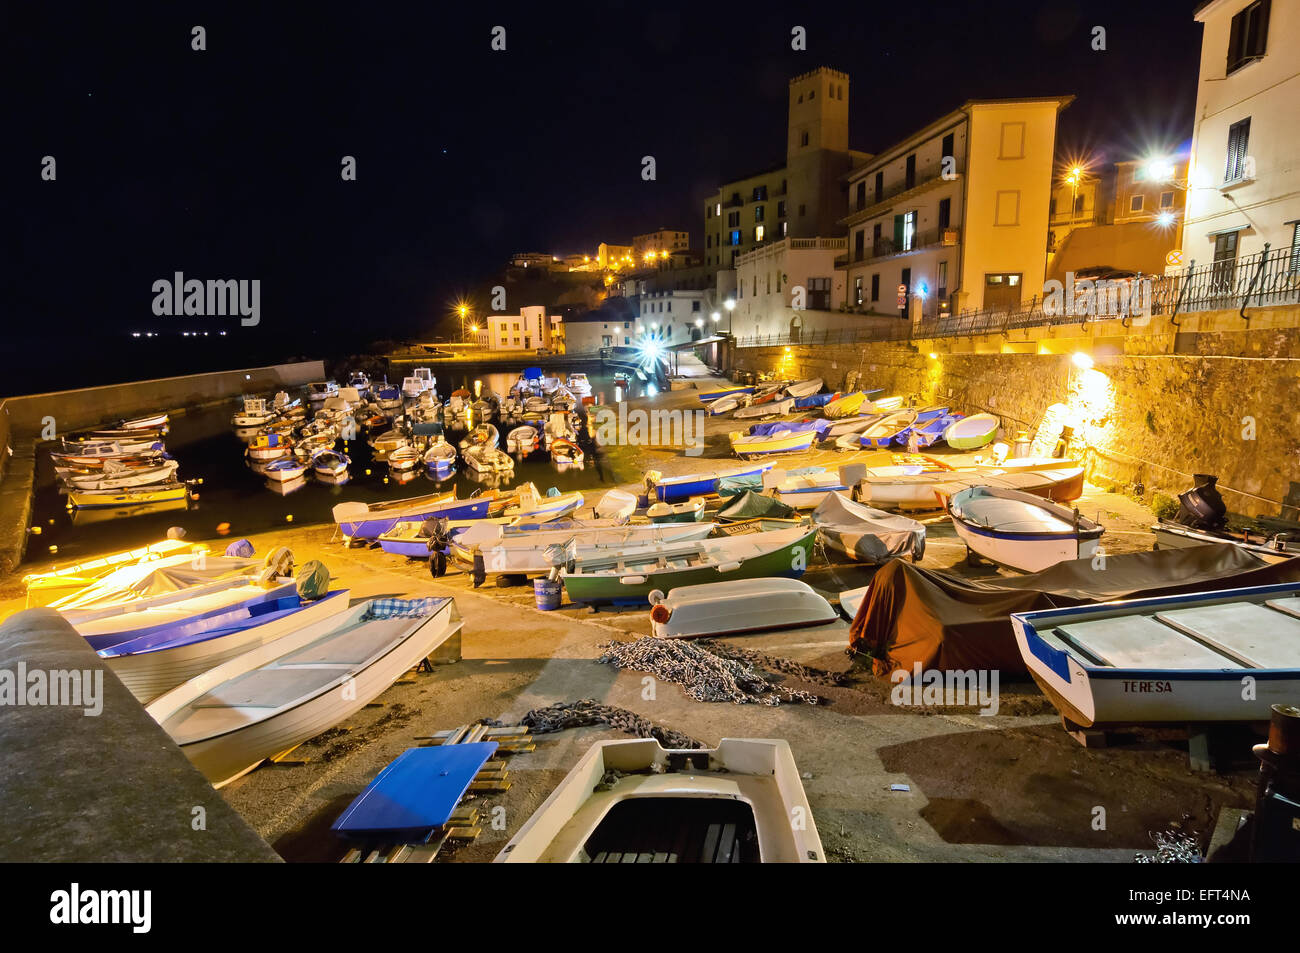 Piombino, Italy - April 17, 2013: night view of ancient downtown port in Piombino, Italy. Piombino historical urban - Stock Image